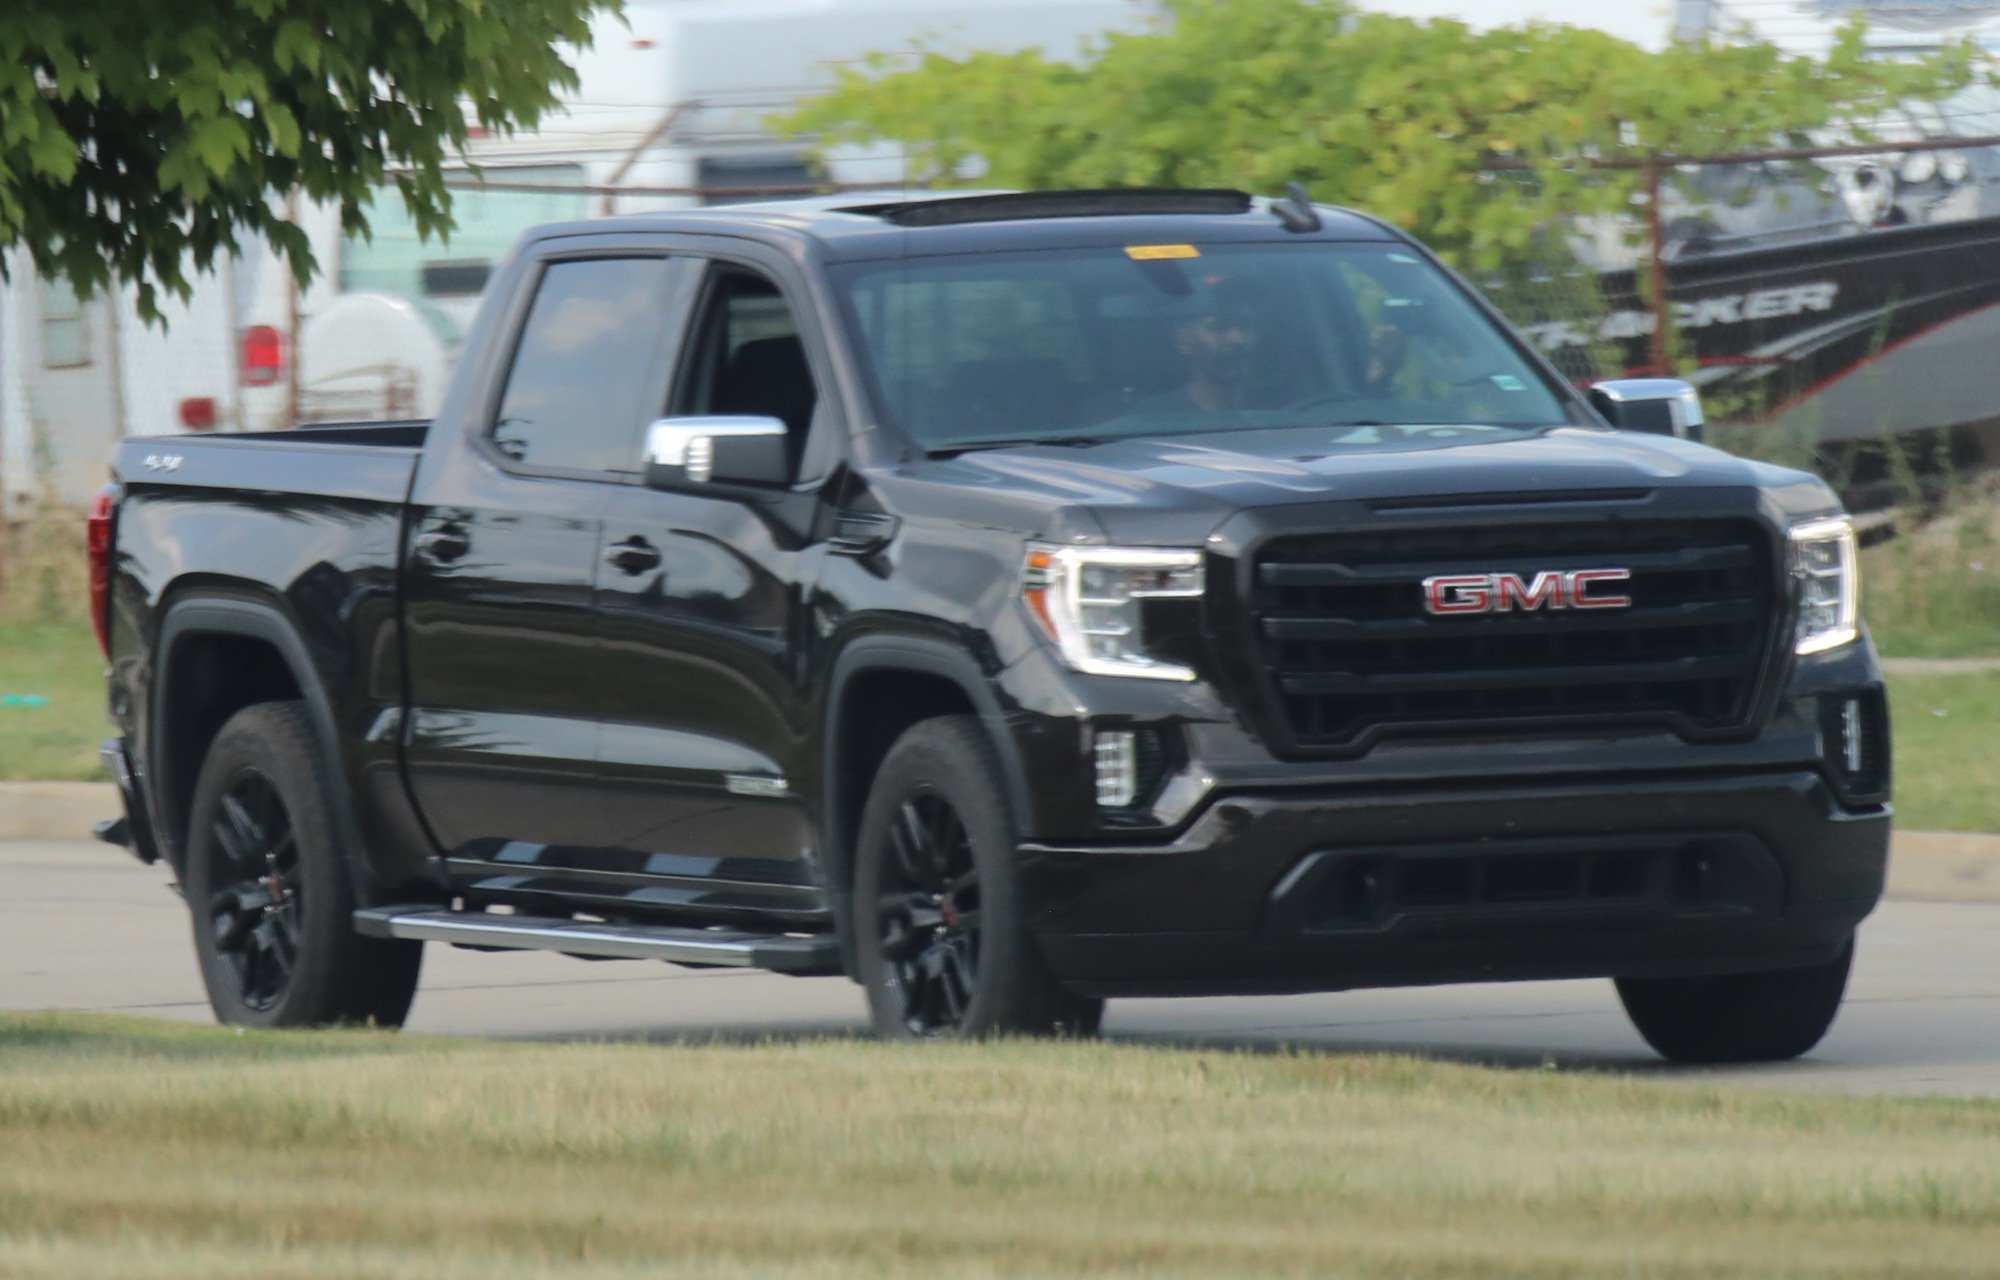 74 New 2019 Gmc Truck Price and Review with 2019 Gmc Truck